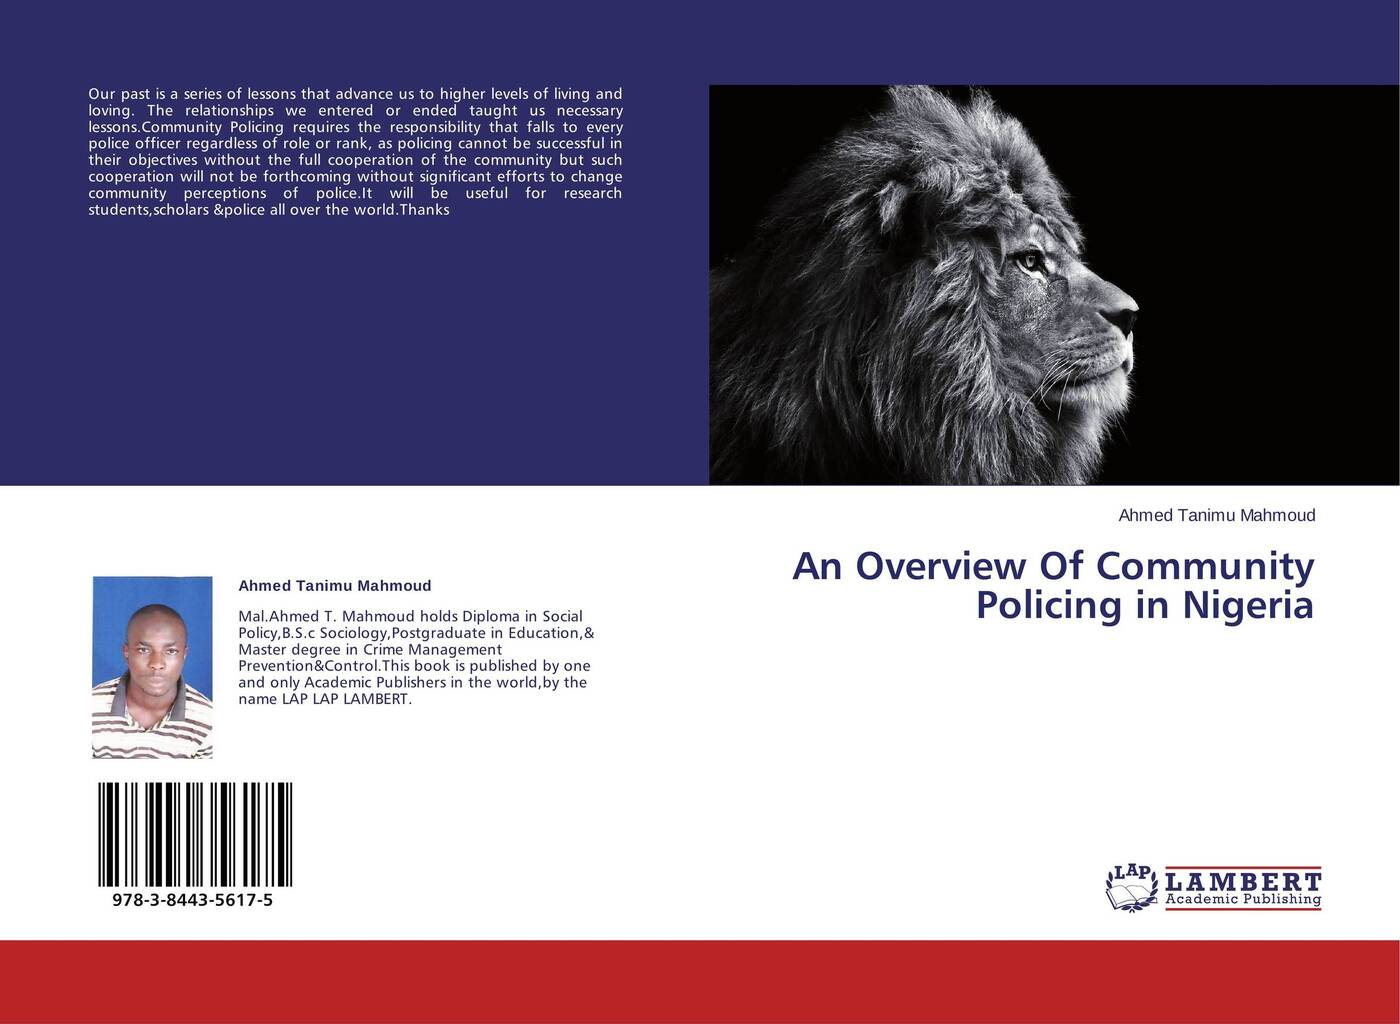 Ahmed Tanimu Mahmoud An Overview Of Community Policing in Nigeria mahmoud ali ahmed multi tragedies novel